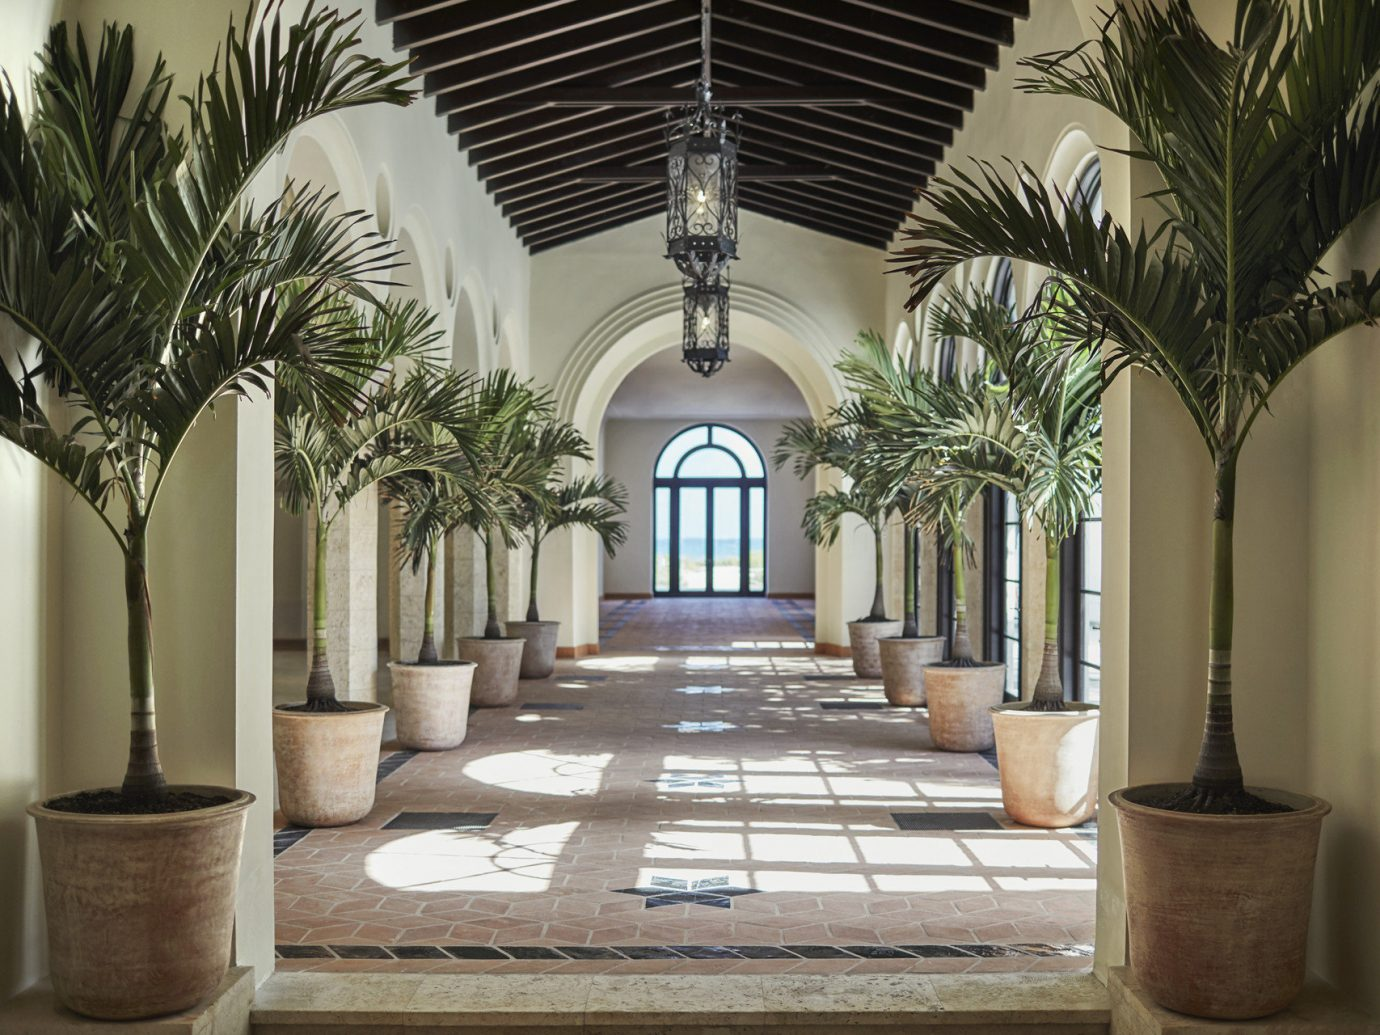 Hotels plant property estate building Architecture home Lobby mansion interior design palm Courtyard lighting arch column decorated hacienda hall Villa living room court furniture colonnade